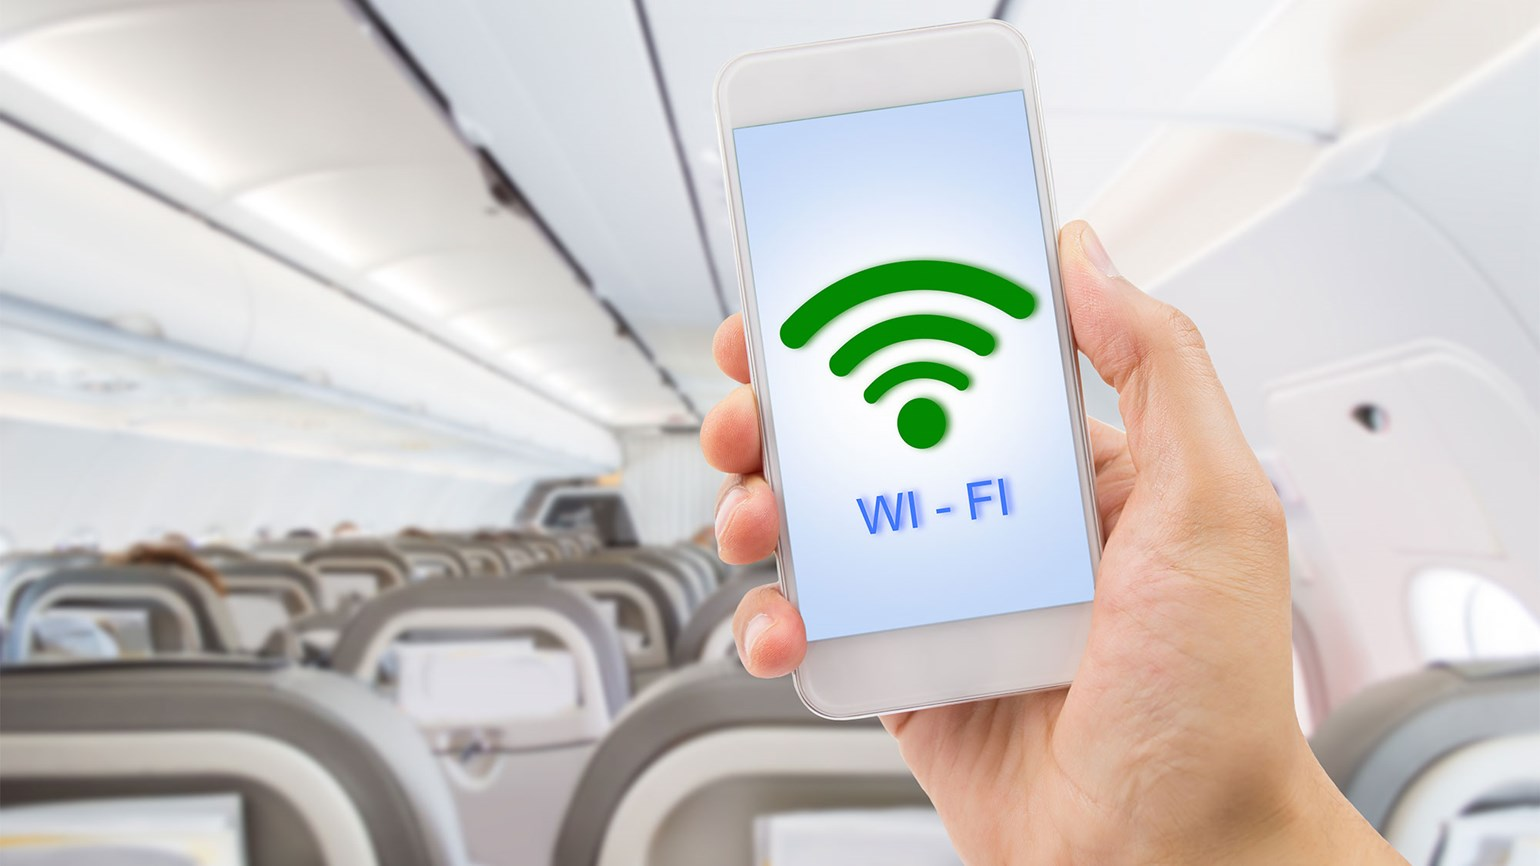 AA's mainline fleet now equipped with high speed WiFi